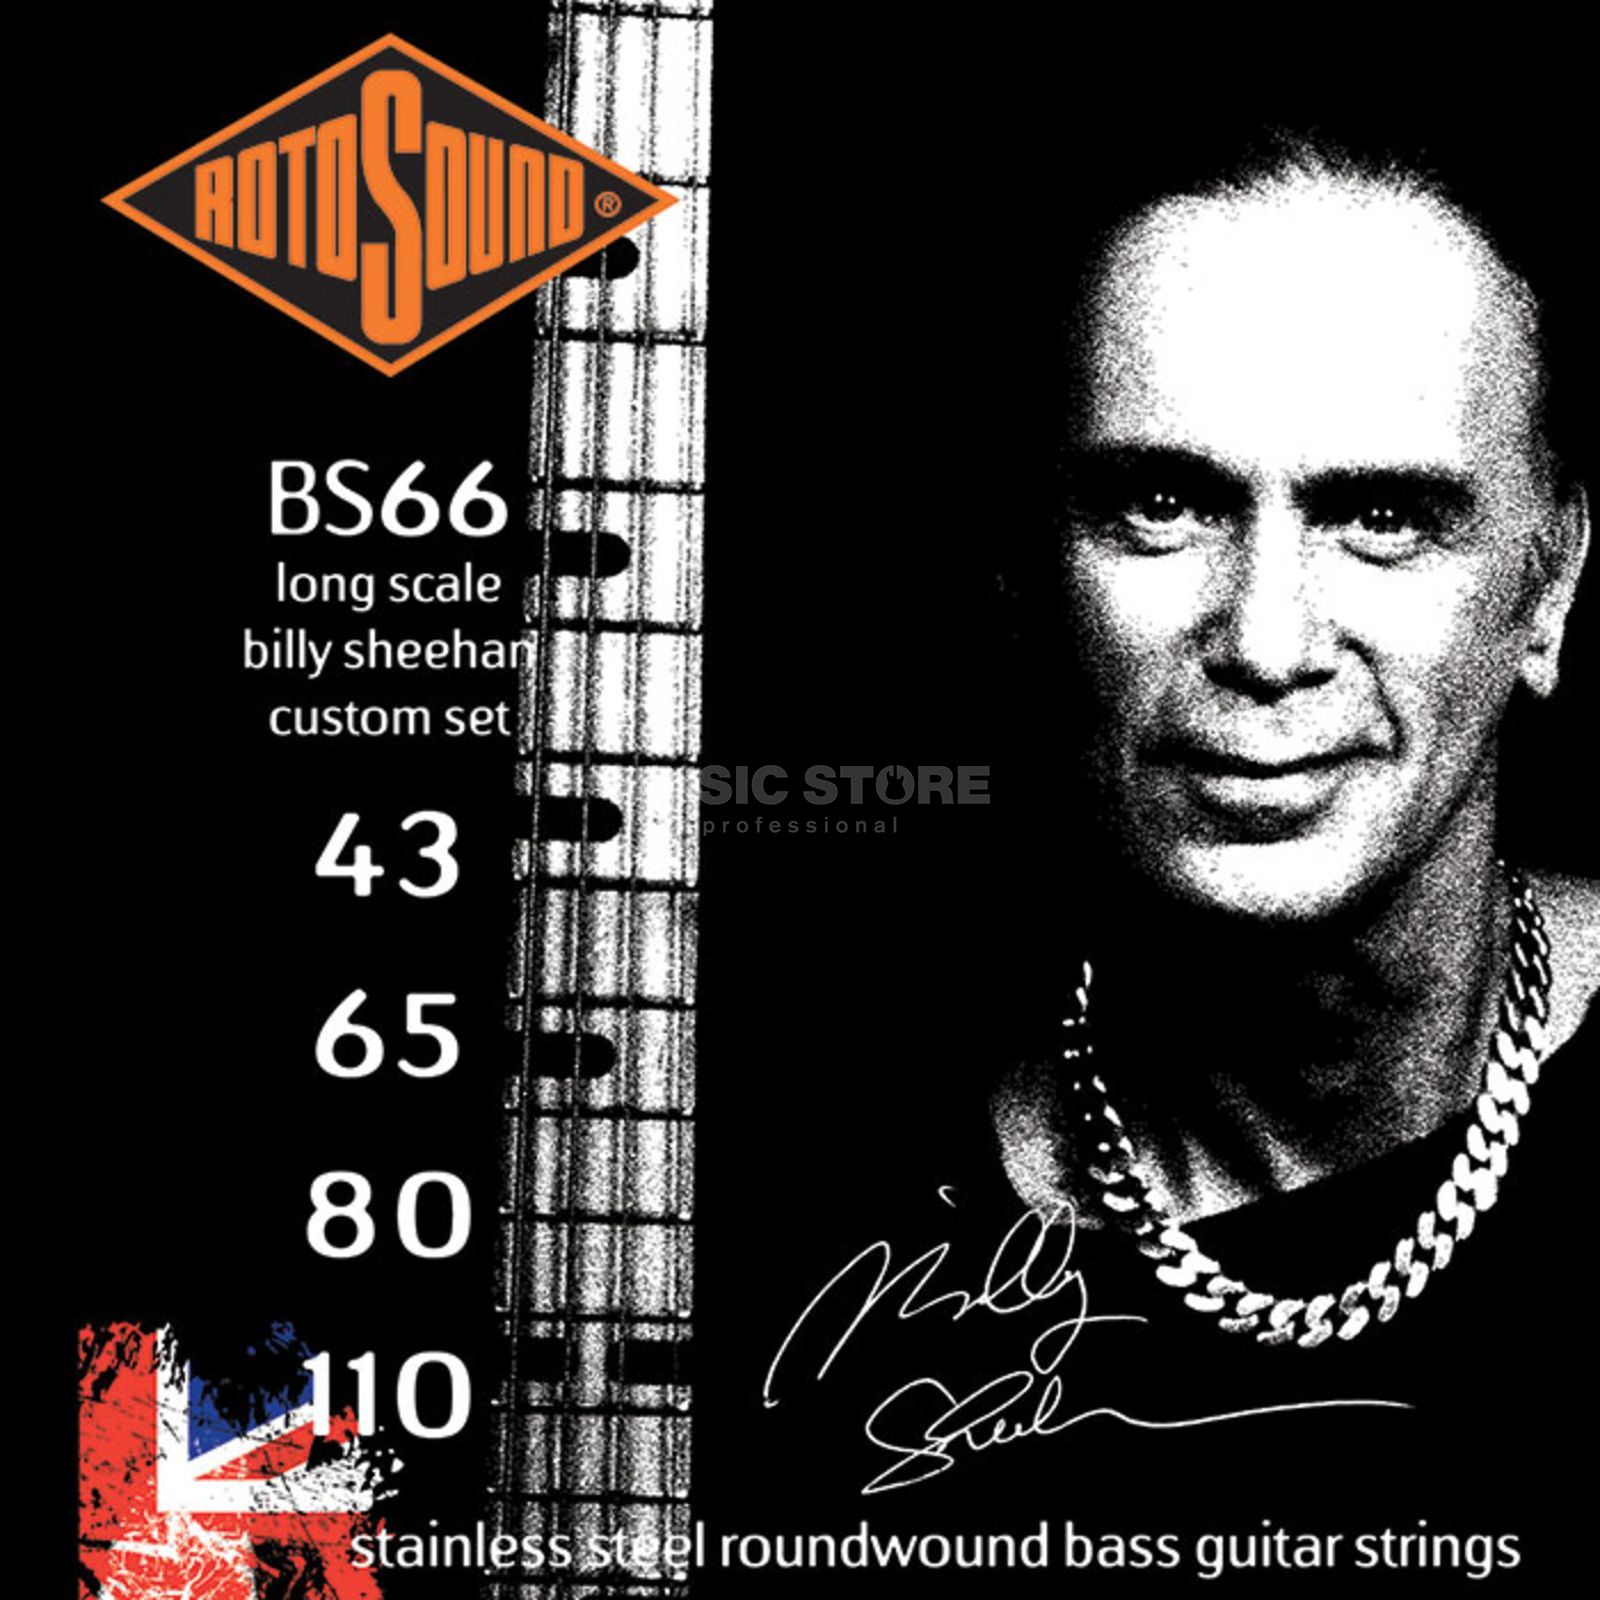 Rotosound Bass Strings BS66 43-110 4 Set Billy Sheehan, Stainless Steel Product Image